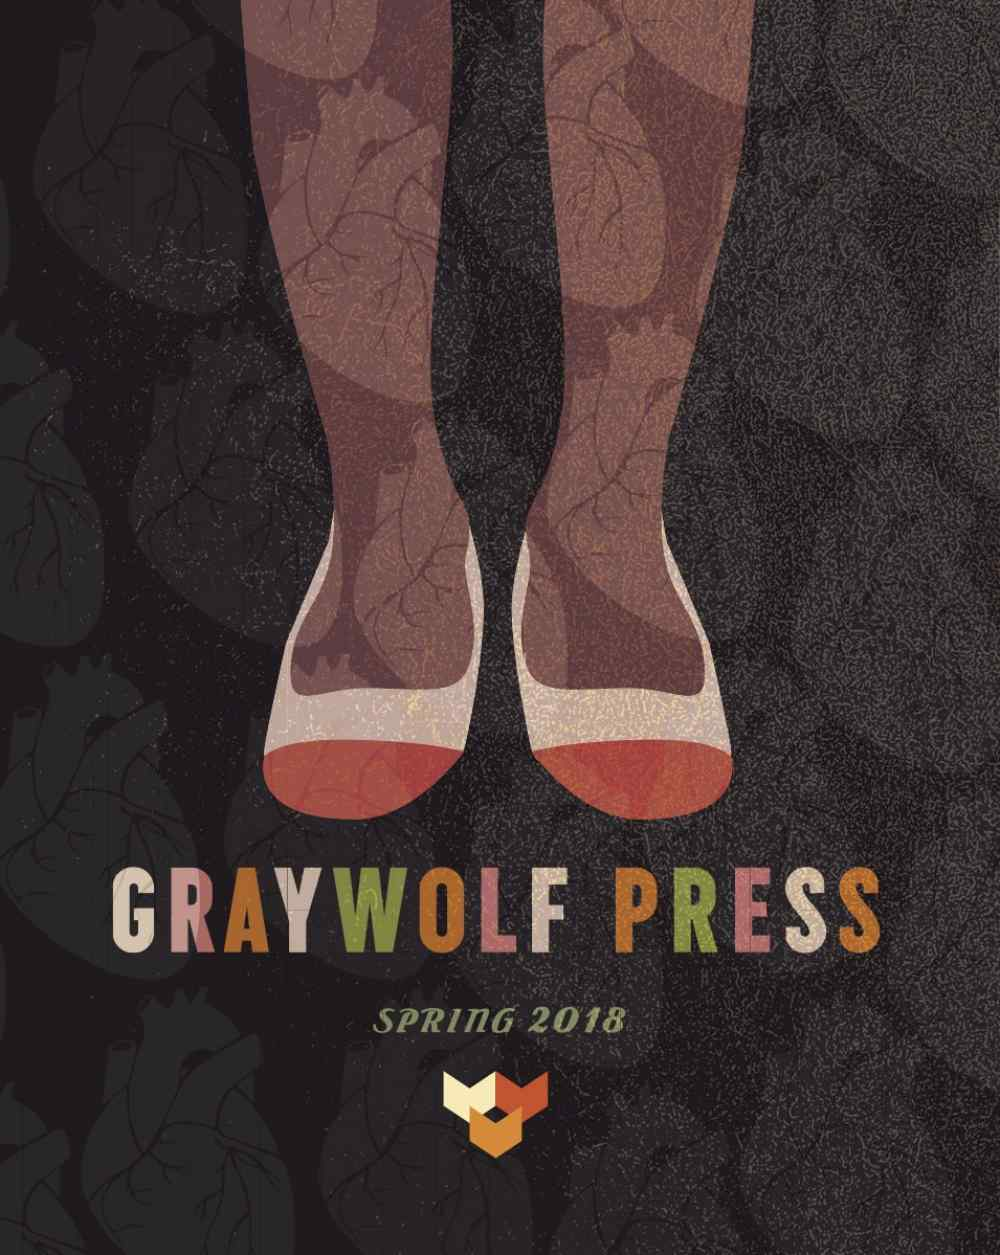 Spring 2018 Graywolf Press Catalog Cover